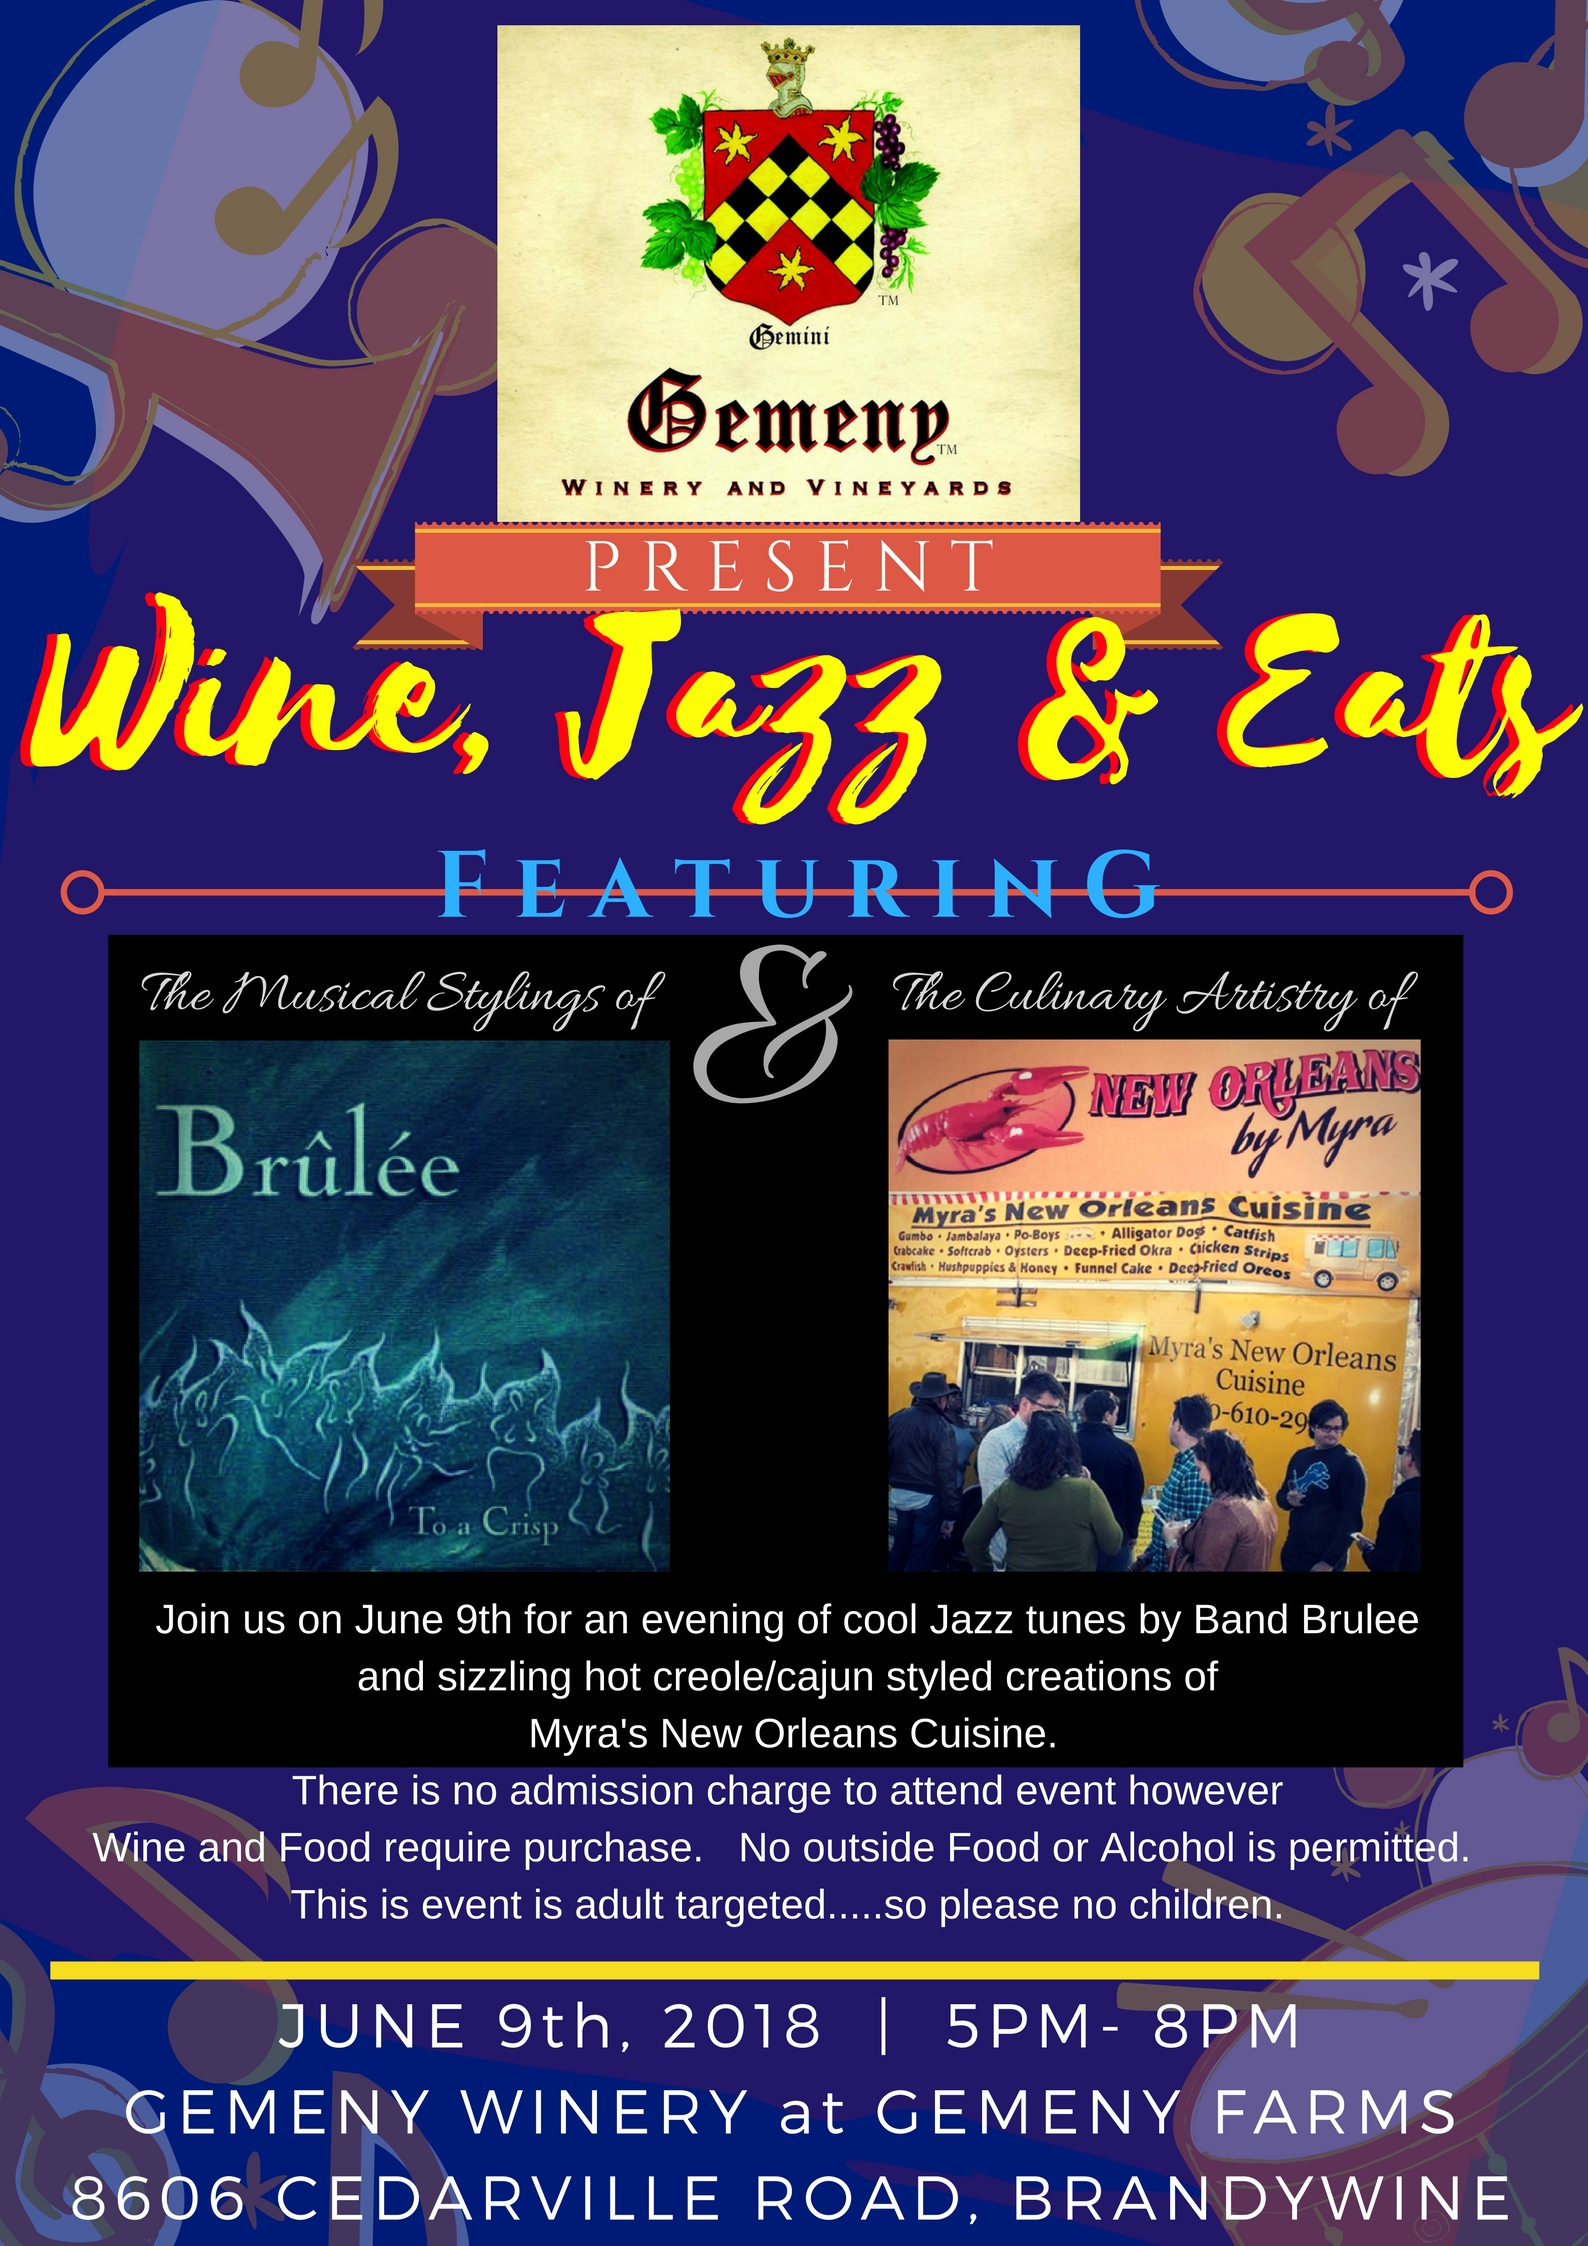 Wine and Jazz - Maryland Wineries Association